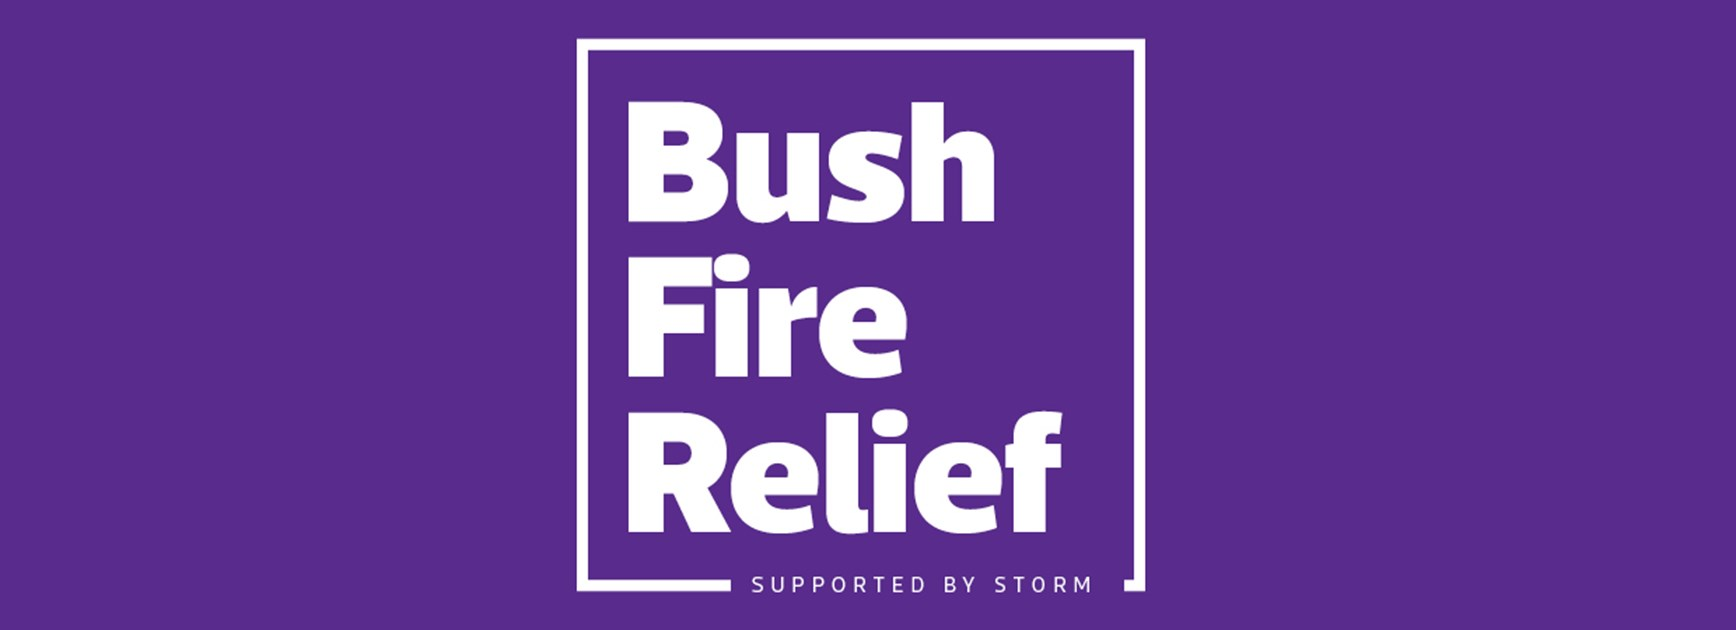 Melbourne Storm to support communities devastated by bushfire